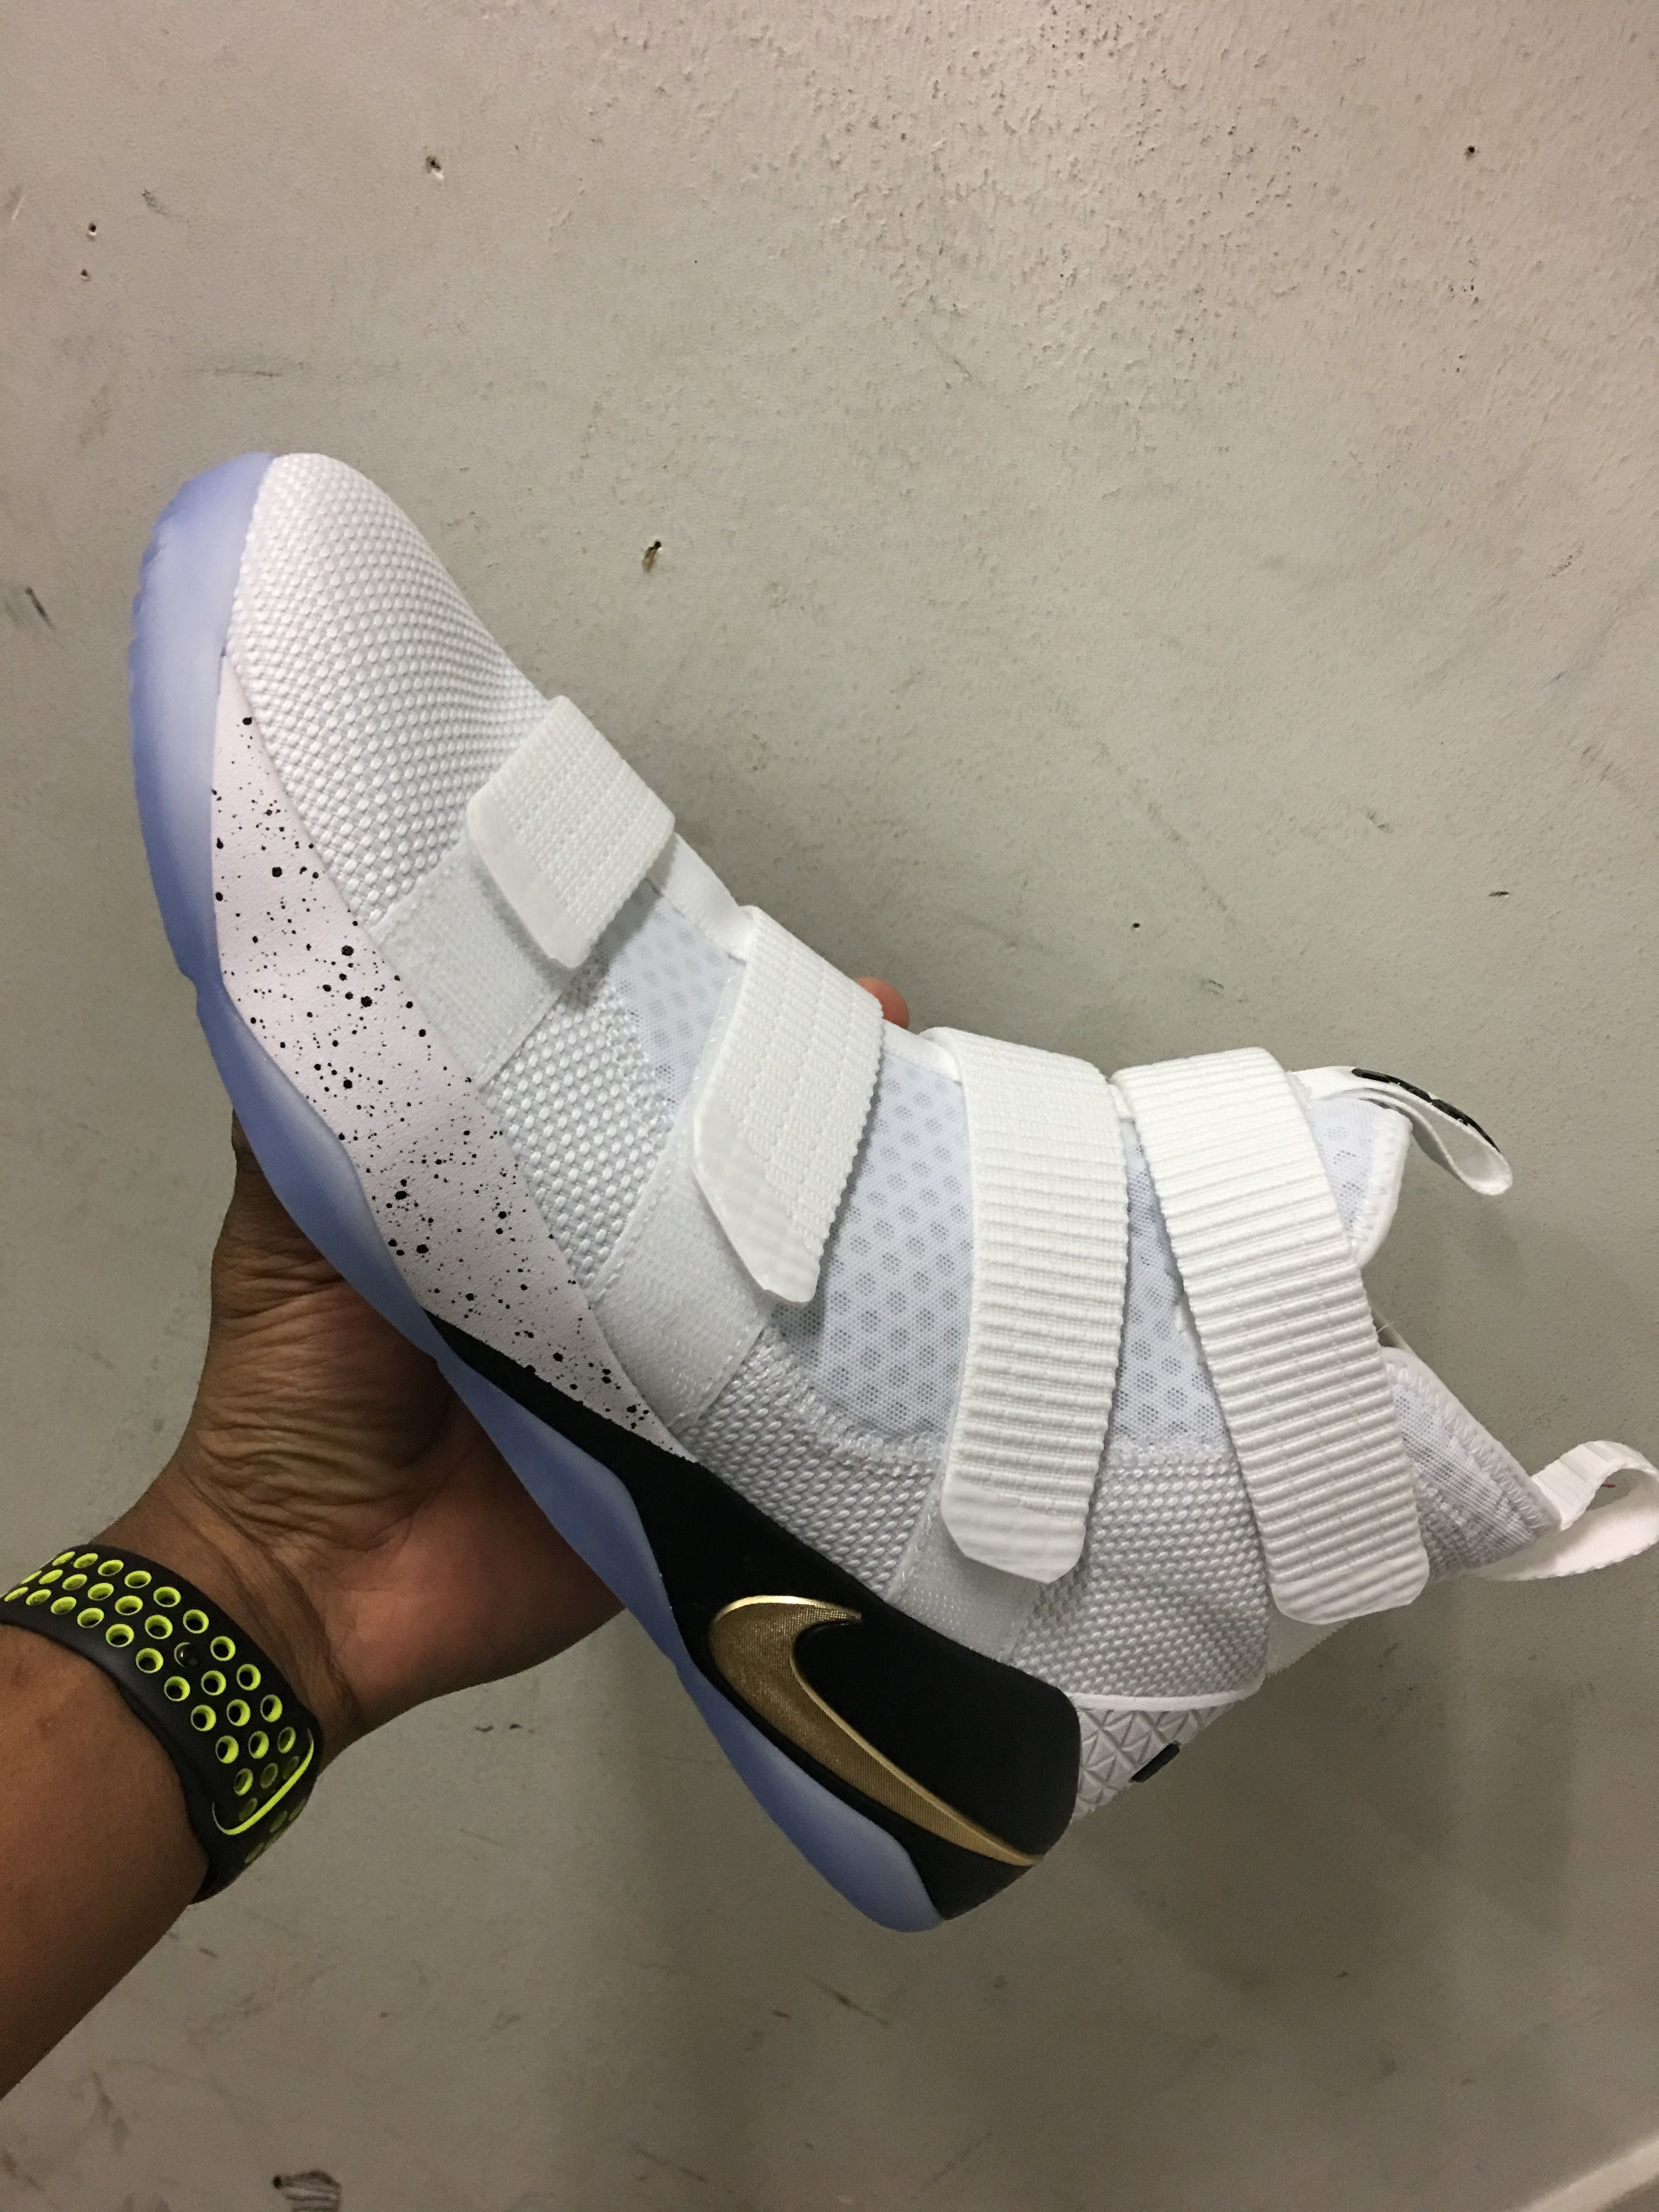 The Nike LeBron Soldier 11 Releases This Month - WearTesters